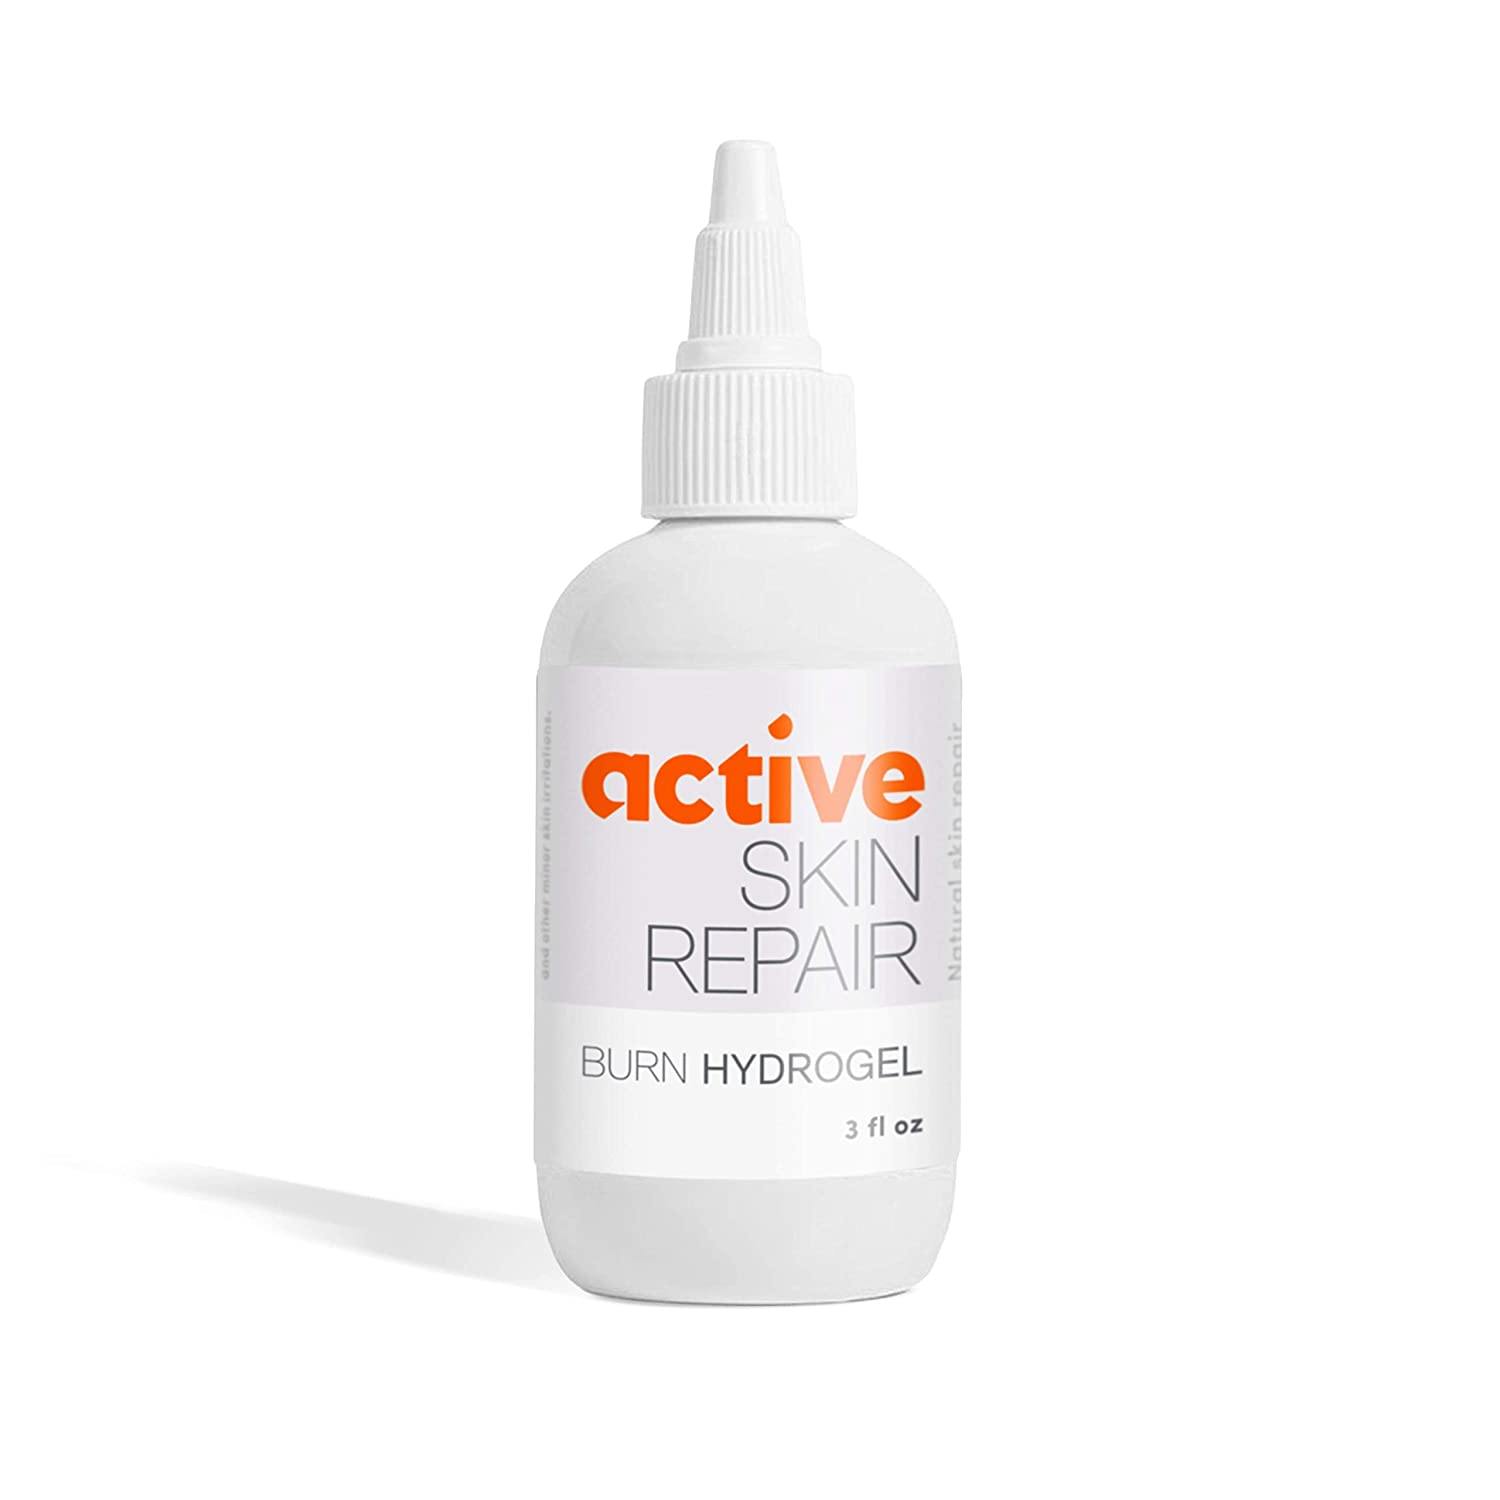 Active Skin Repair First Aid - Detroit Mall Detroit Mall Natural Non-Toxic Hydrogel Burn